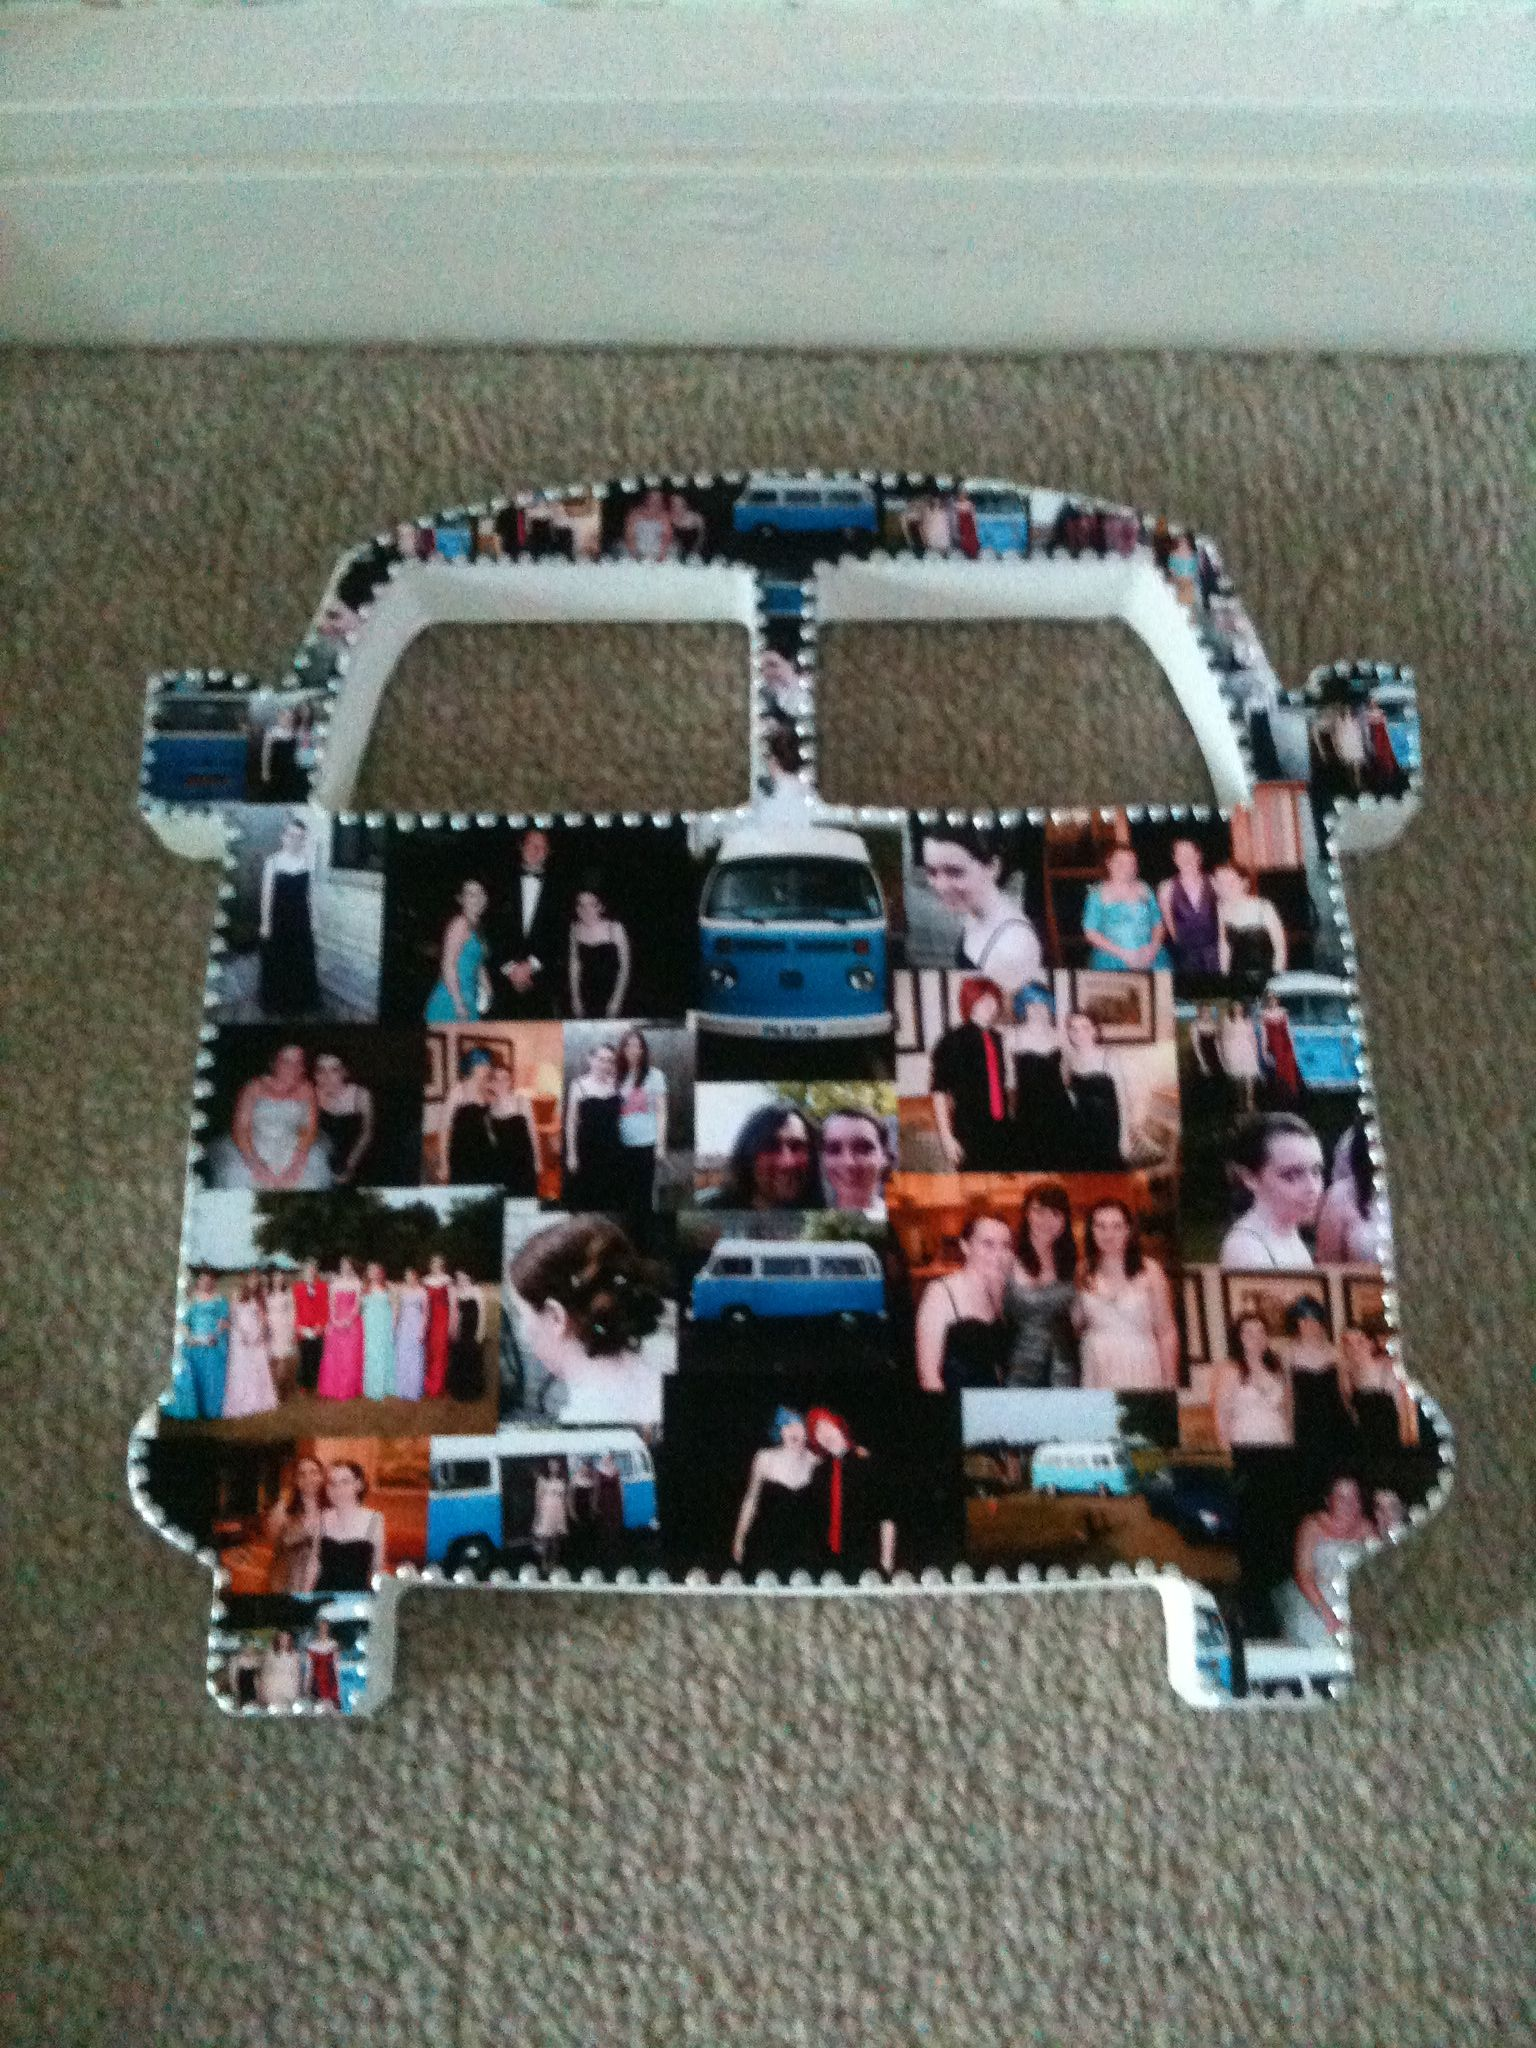 Love this the transport I went to prom filled with memories/ photos of prom:')